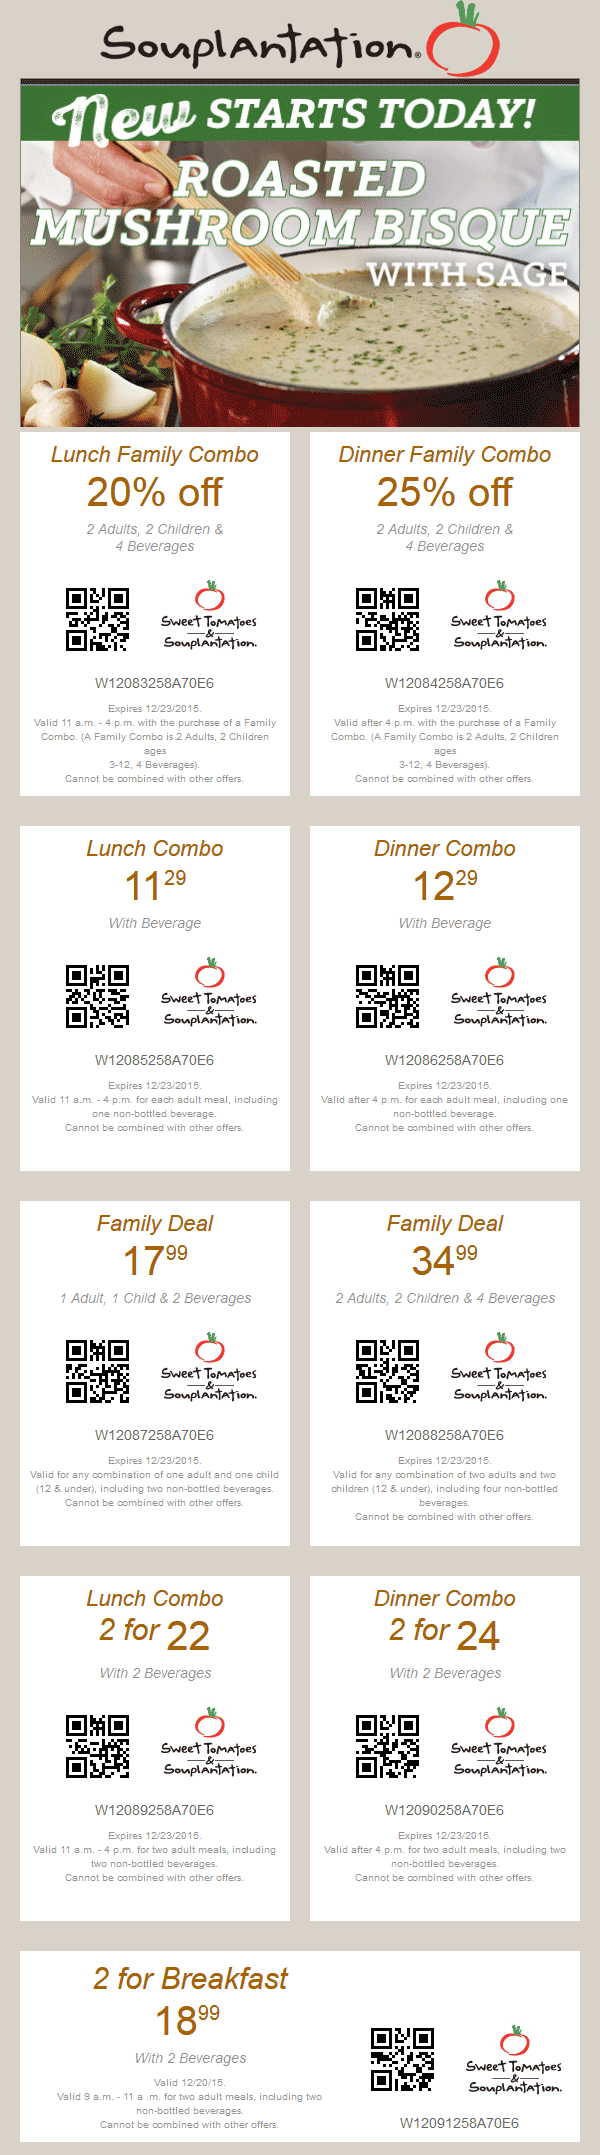 Sweet Tomatoes Coupon December 2016 20% off lunch, 25% off dinner at Souplantation & Sweet Tomatoes